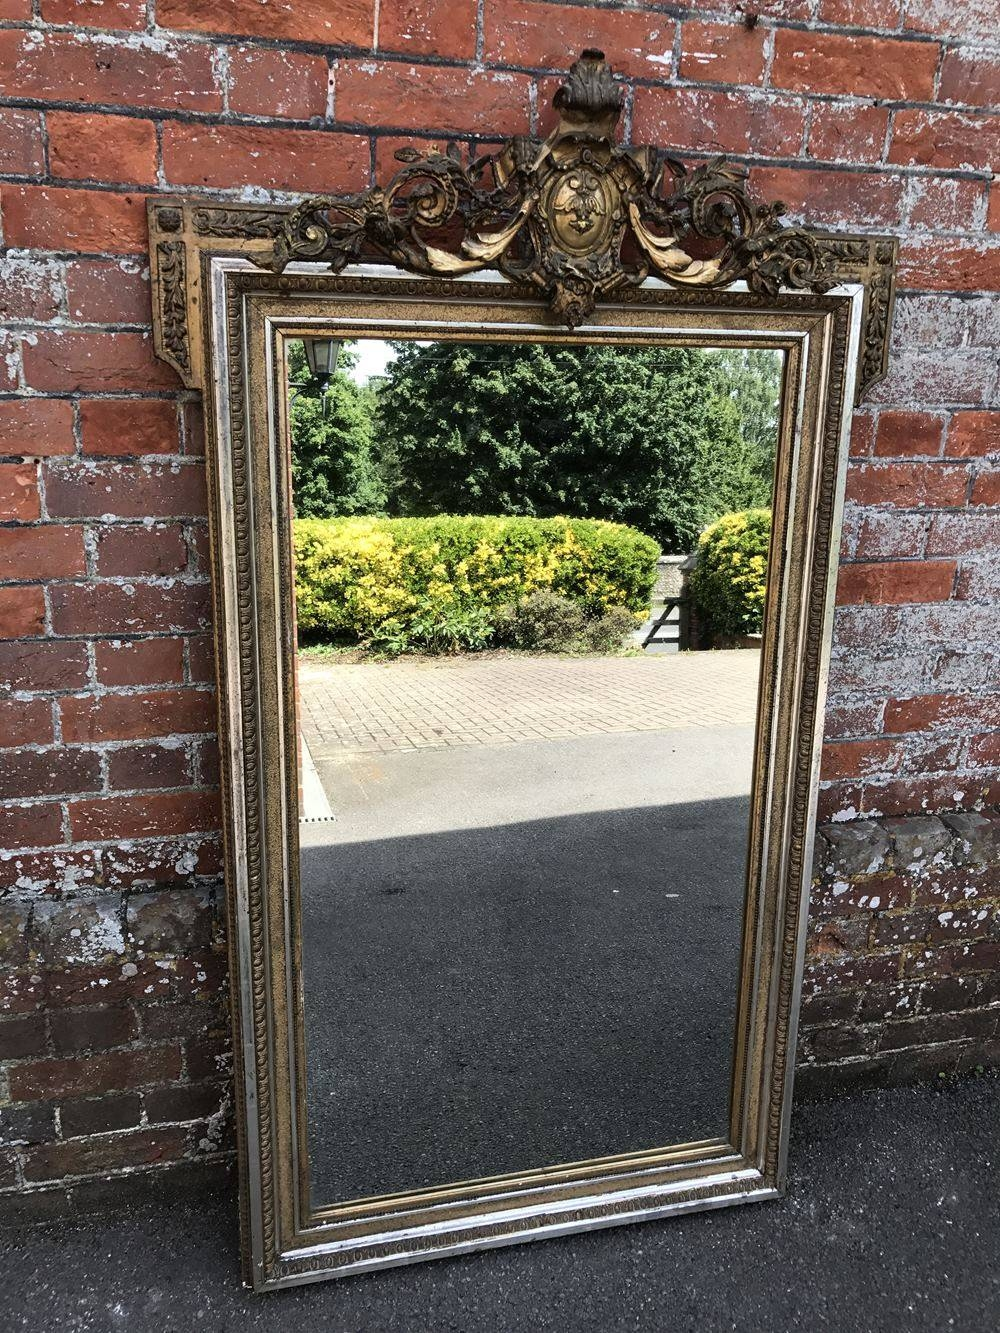 A Stunning Large Antique 19th Century French Carved Wood And Gesso Pertaining To Large Silver Gilt Mirrors (View 15 of 15)